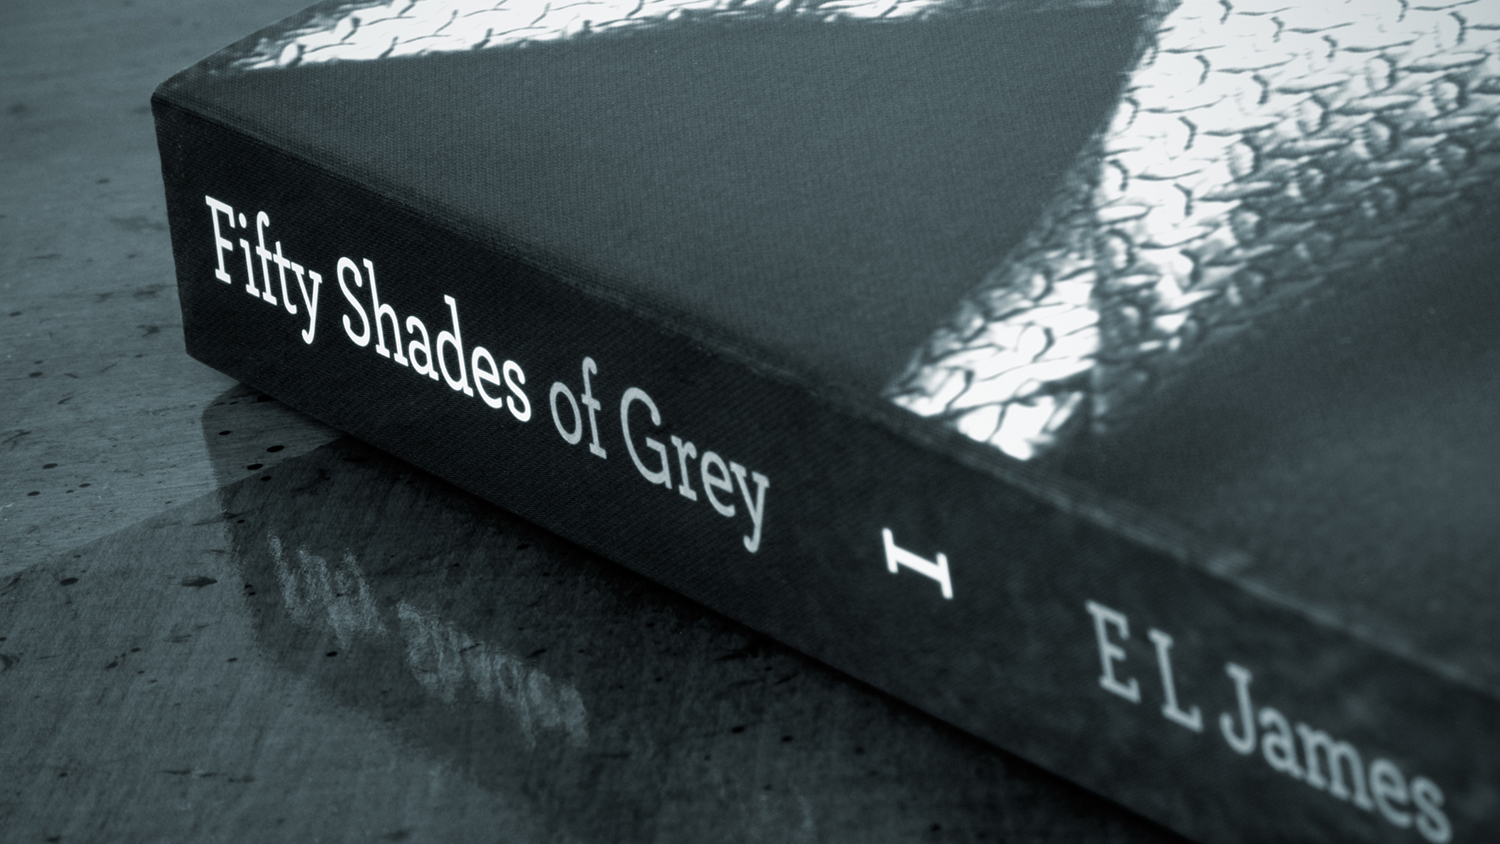 50shadesofgrey-blog-020918